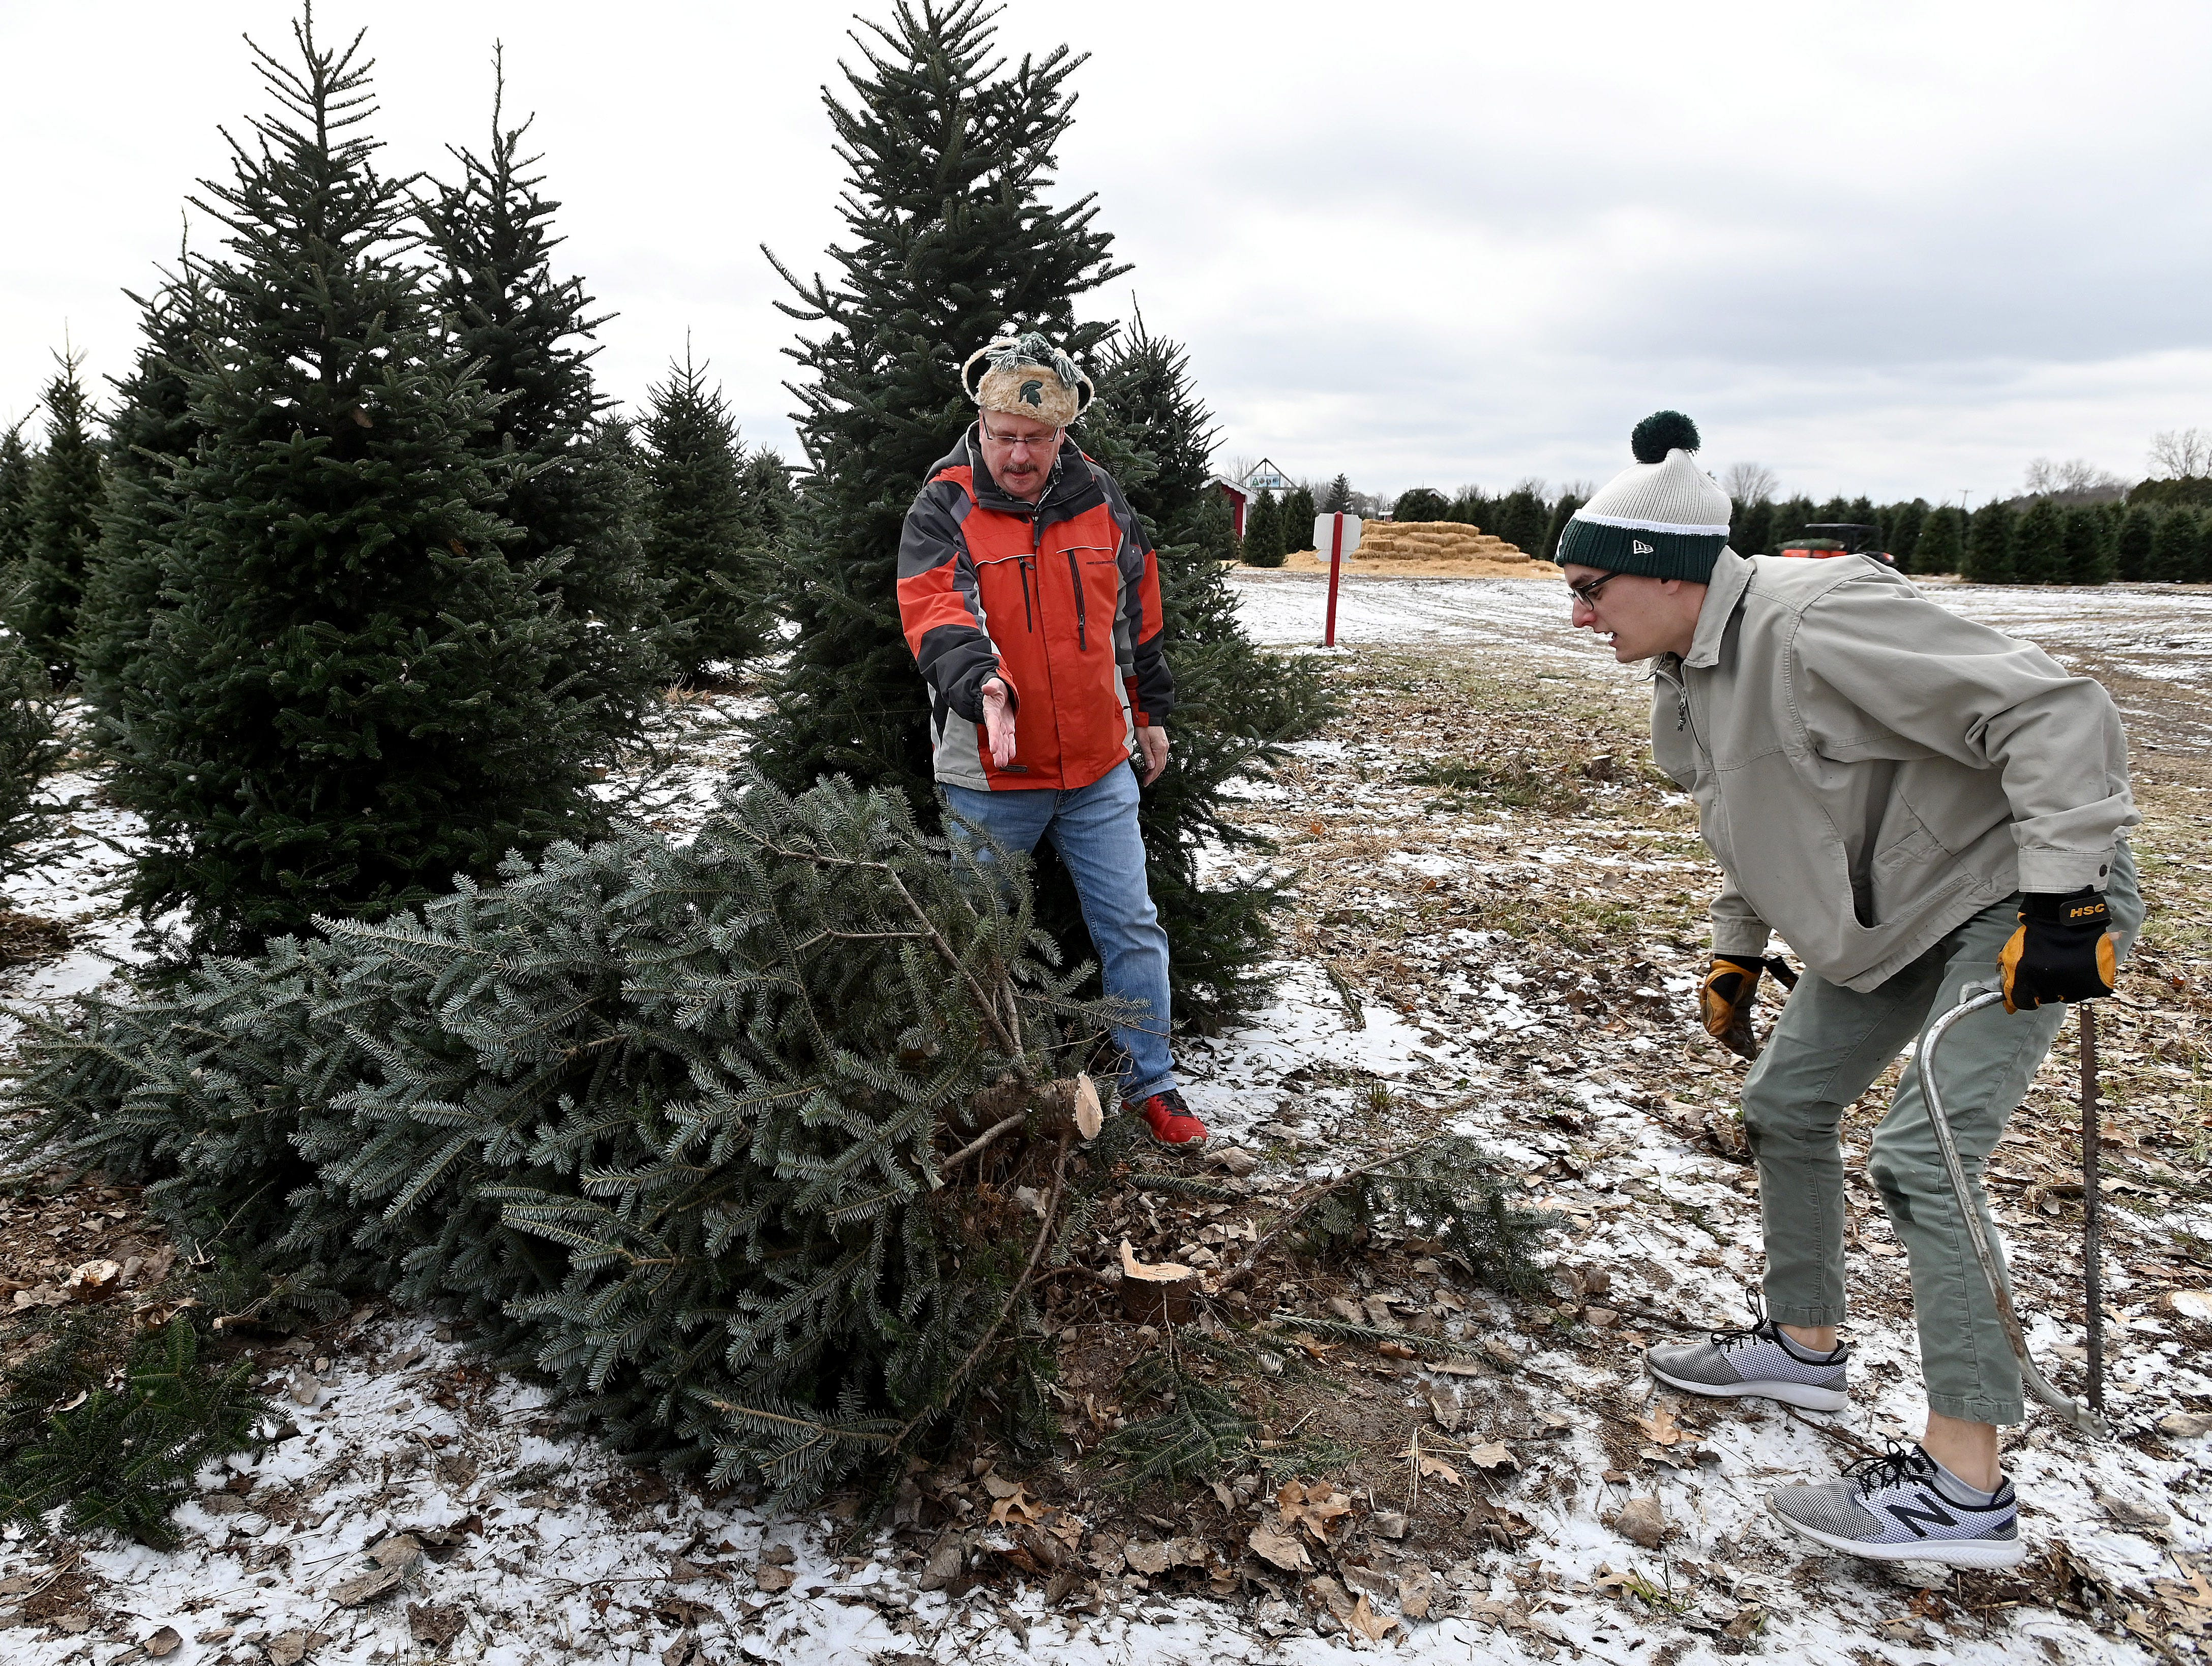 After cutting, Dan Schultz gets a critique of his work from his father, Jim Schultz.  Fortunately for the Bay City family, workers were ready to trim and square-up the base of the freshly cut Fraser fir.